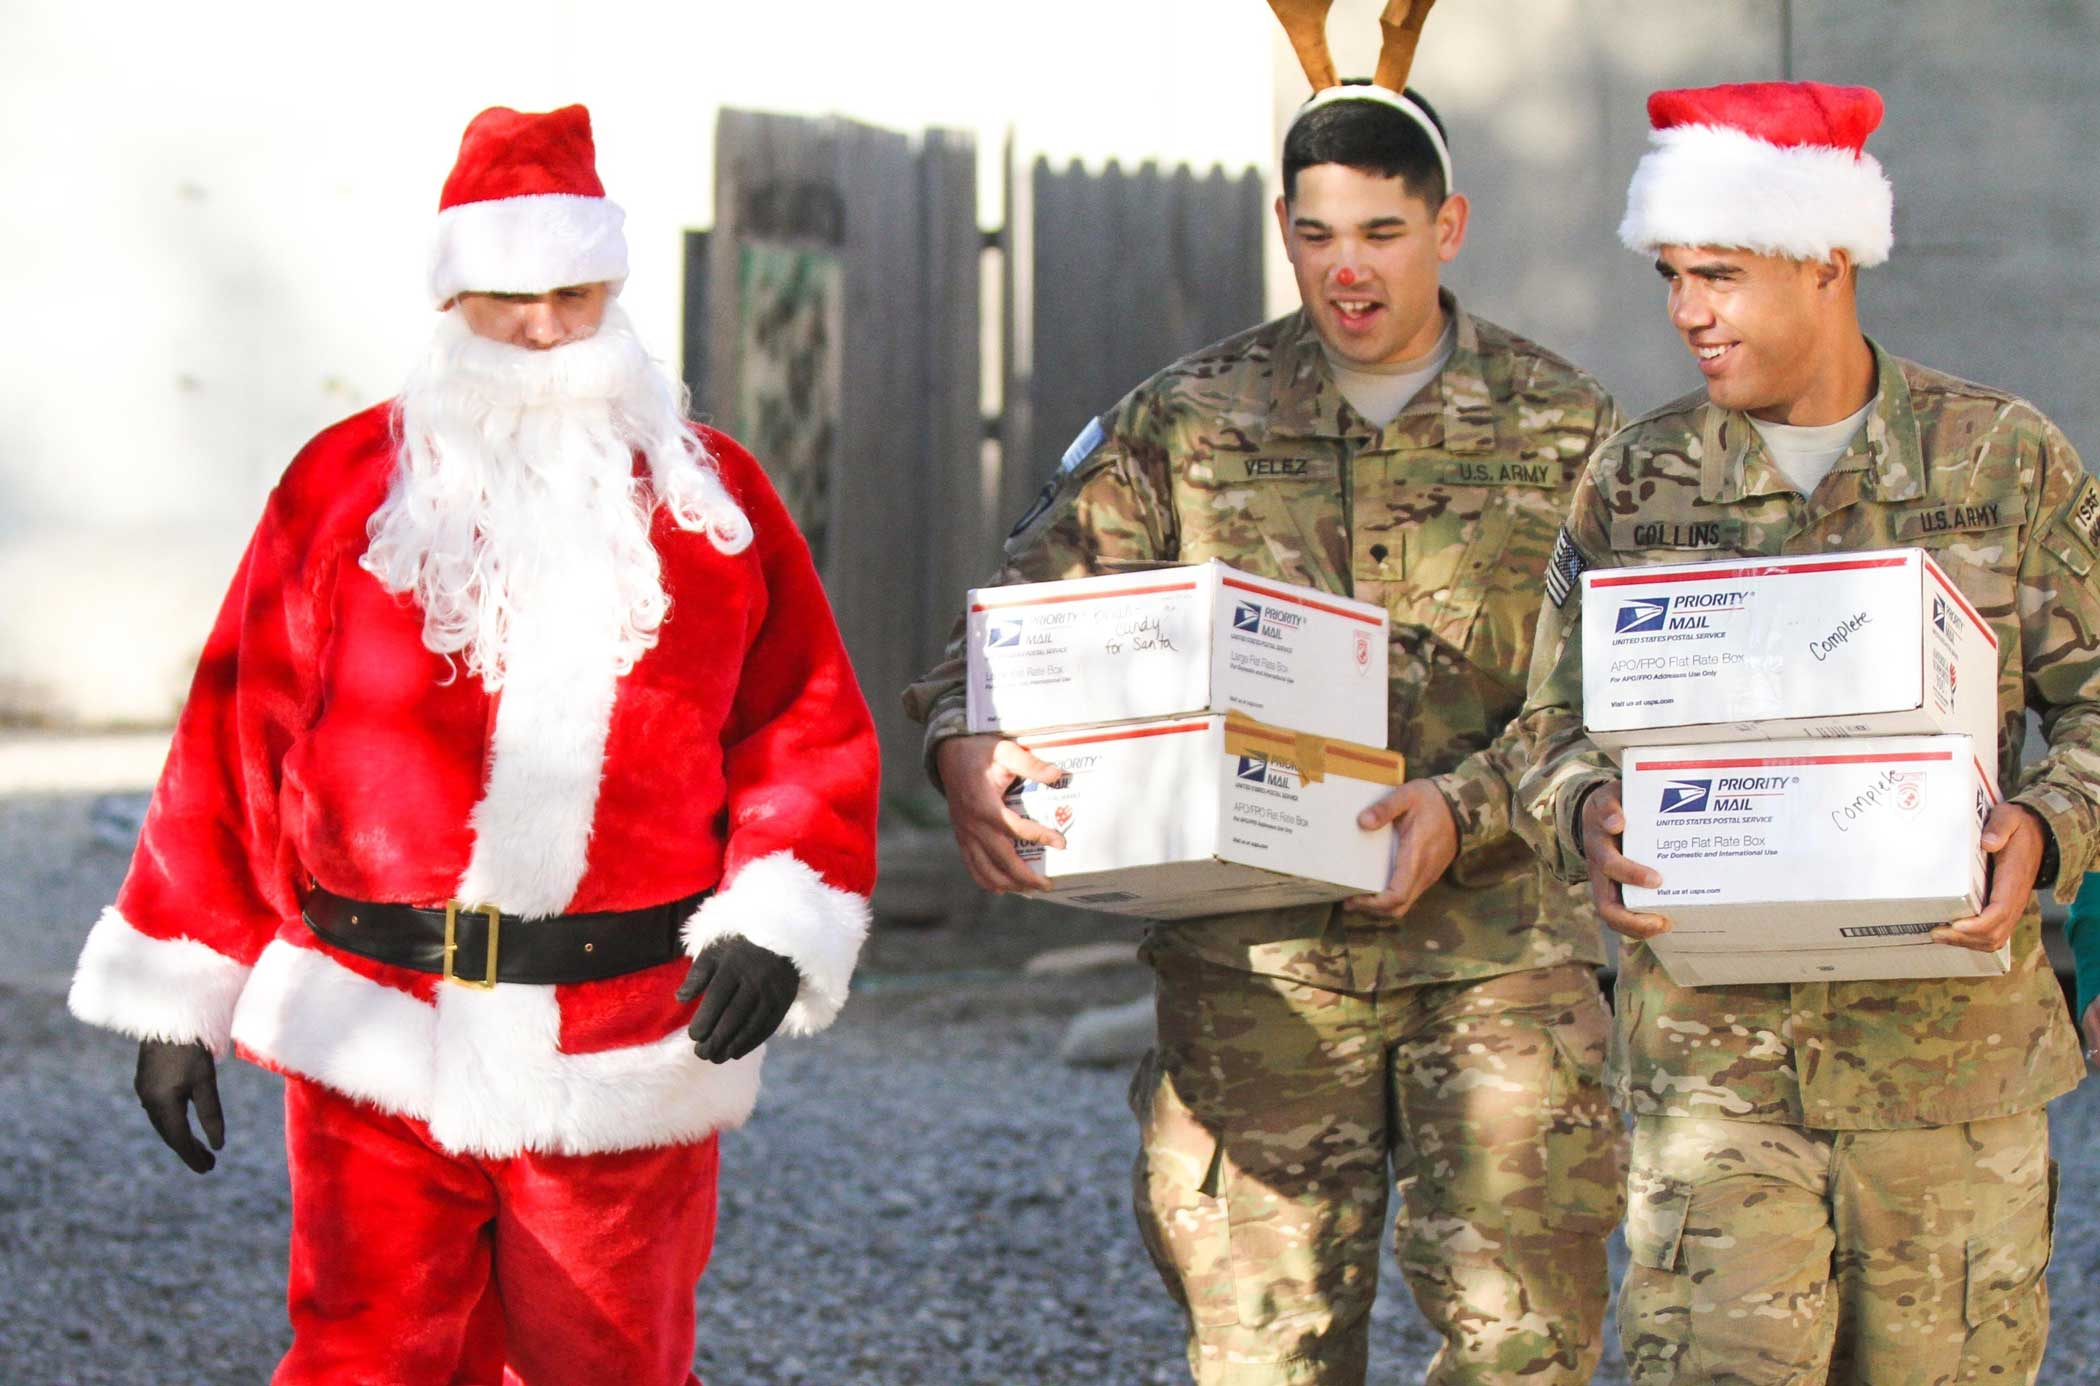 "Chief Warrant Officer 2 Brian Boase, an intelligence chief, Headquarters, Headquarters Company, 3rd Brigade Combat Team ""Rakkasans,"" 101st Airborne Division (Air Assault), walks with two soldiers dressed as ""Santa's Helpers"" while they deliver care packages at Forward Operating Base Salerno, Afghanistan, Dec. 25, 2012. Photo by Spc. Brian Smith-Dutton, courtesy of U.S. Army."